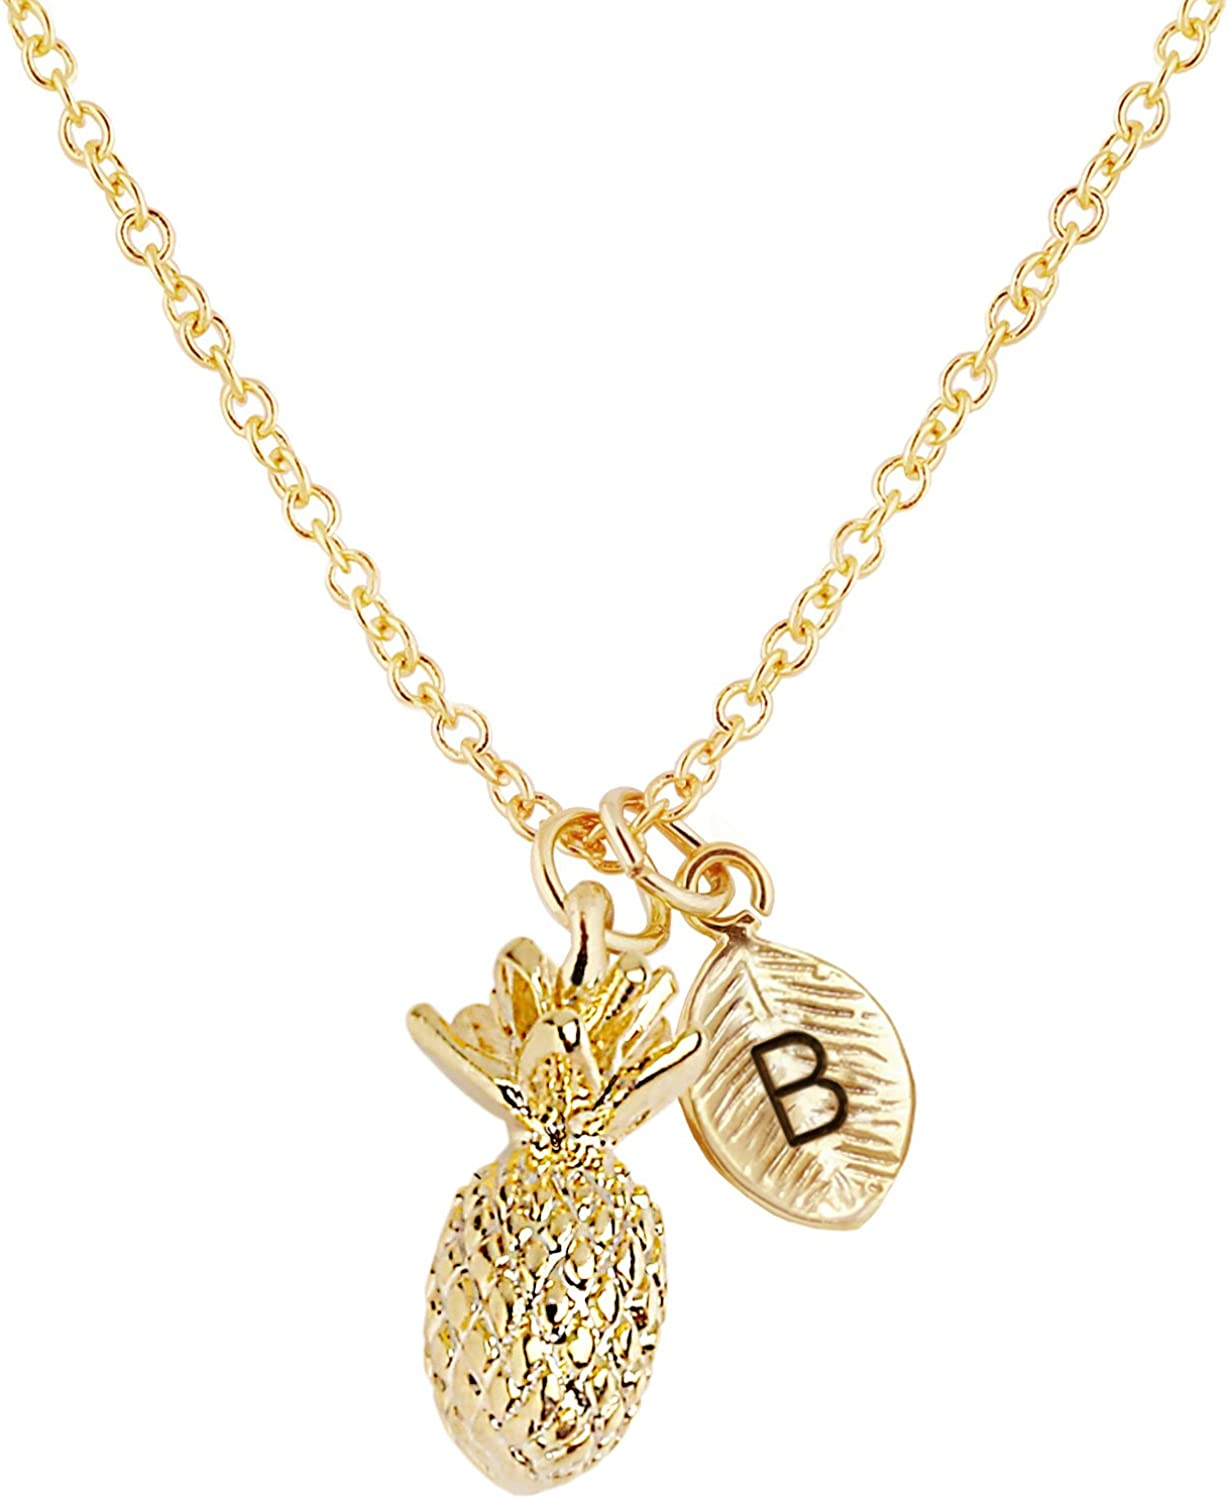 MignonandMignon Tropical Gold Pineapple Necklace Pineapple Womens Initial Pineapple Charm Summer Outdoors Summer Party Summer Gift - 3PAN-L